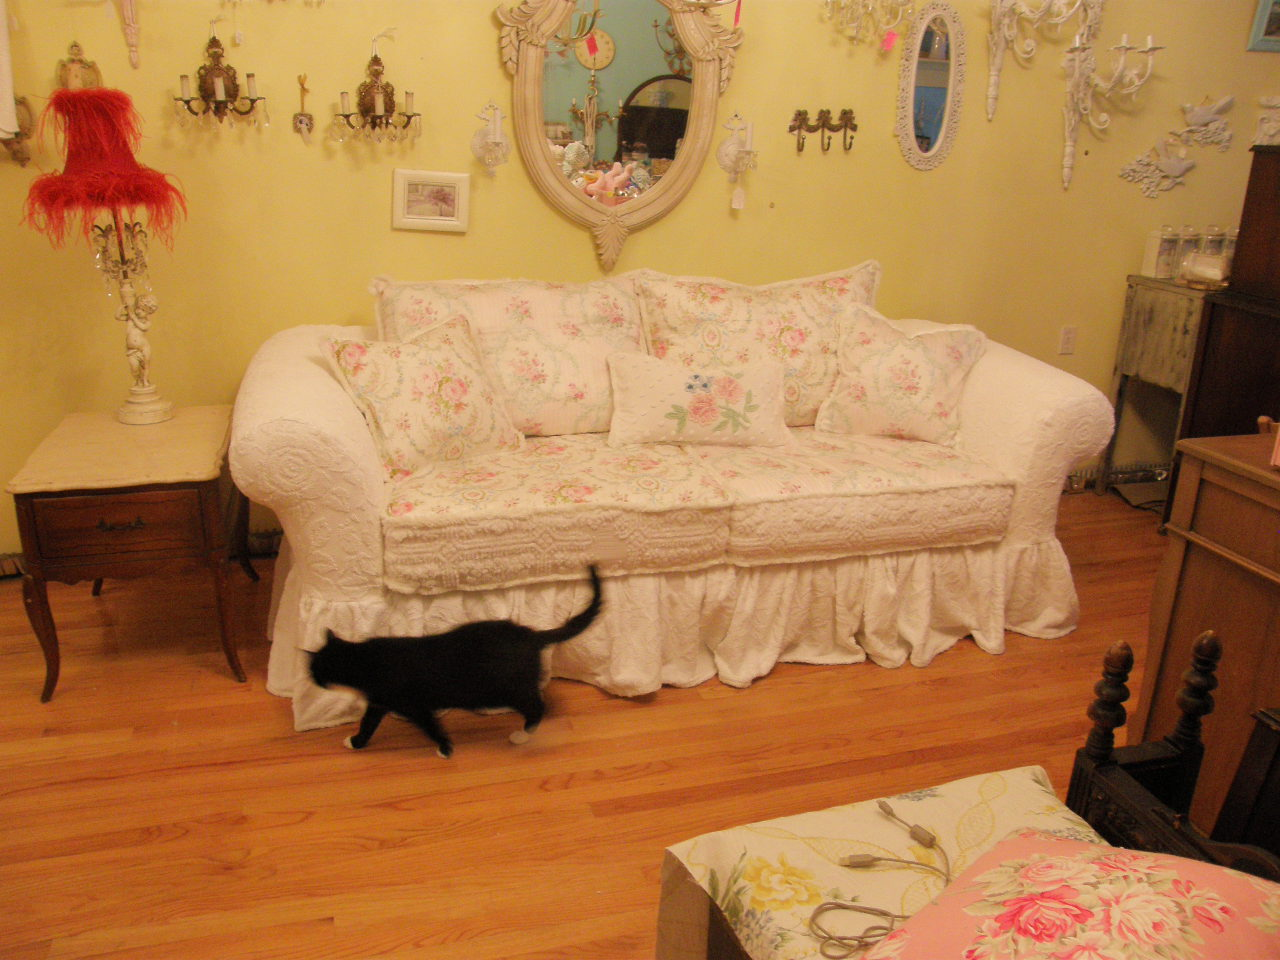 Vintage Chic Furniture Schenectady NY: OMG! My New Sofa